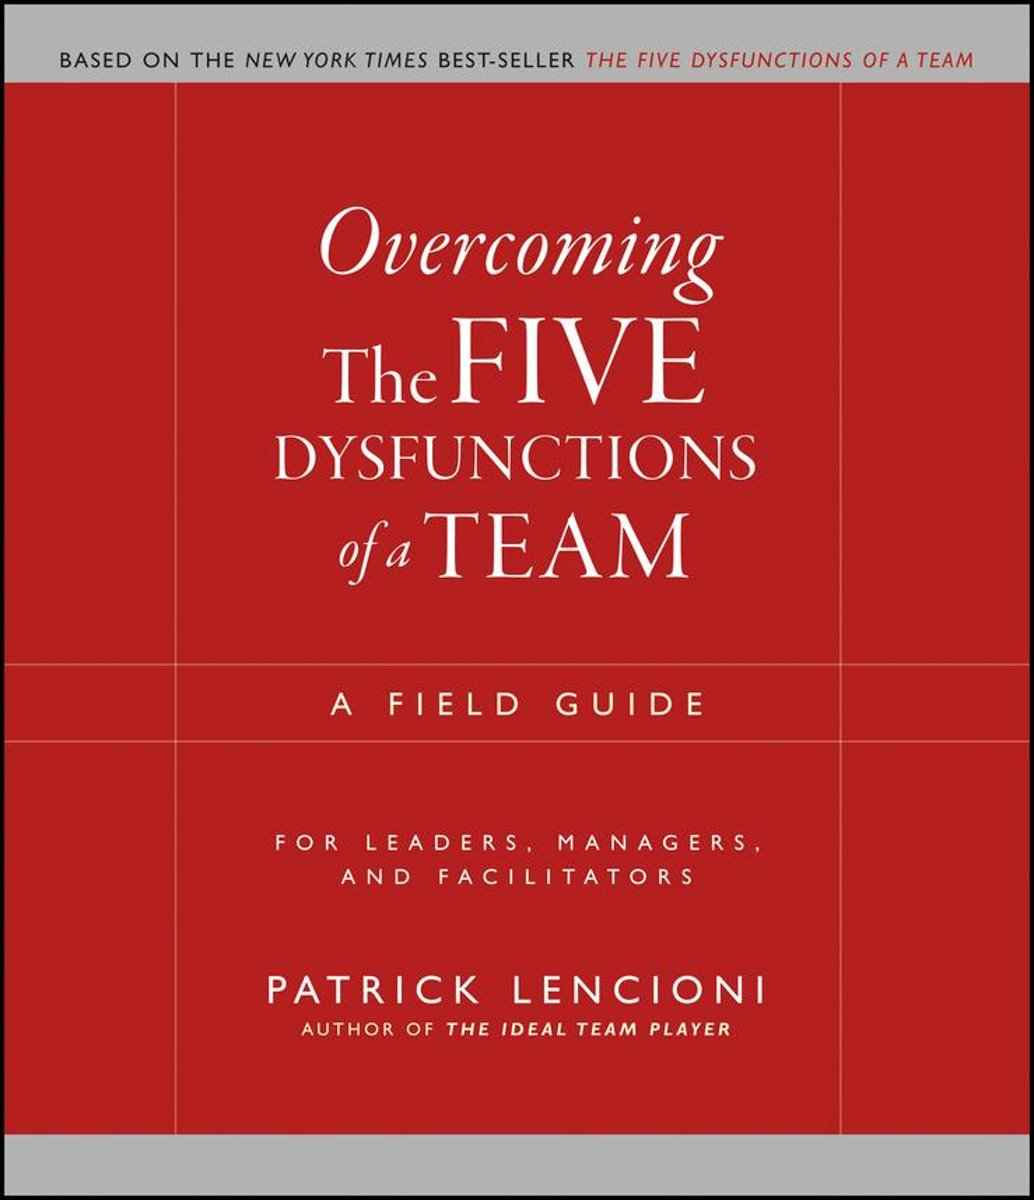 Overcoming the Five Dysfunctions of a Team